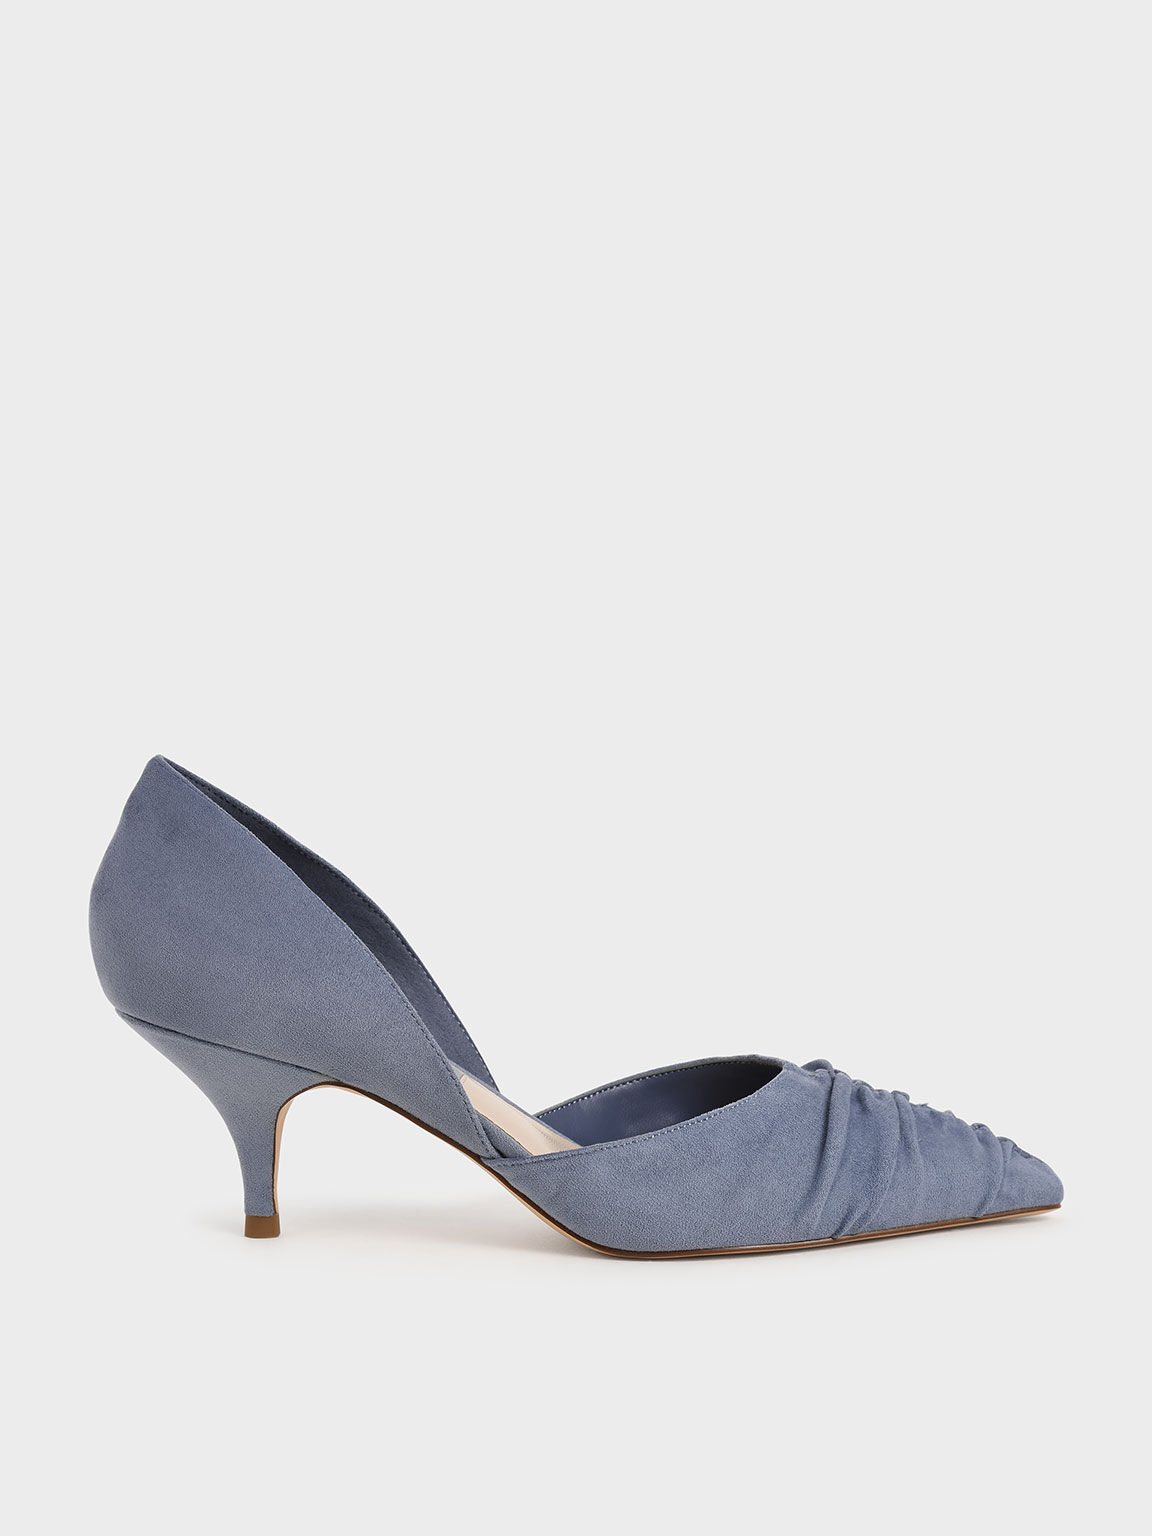 Textured Ruched D'Orsay Court Shoes, Blue, hi-res